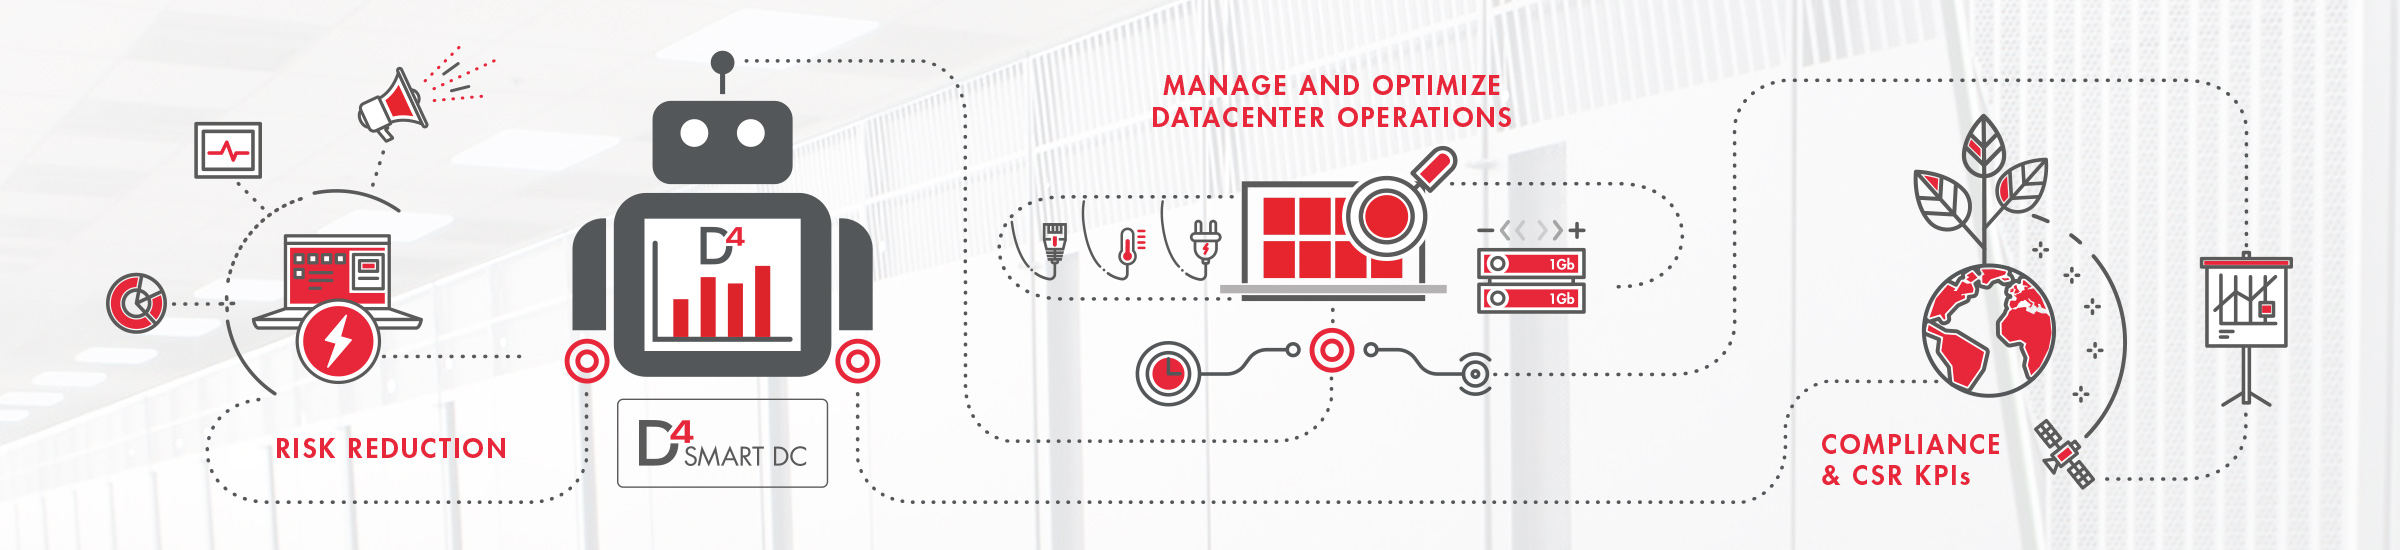 DATA4 White Paper : Smart Data Centers for Next-Generation Colocation